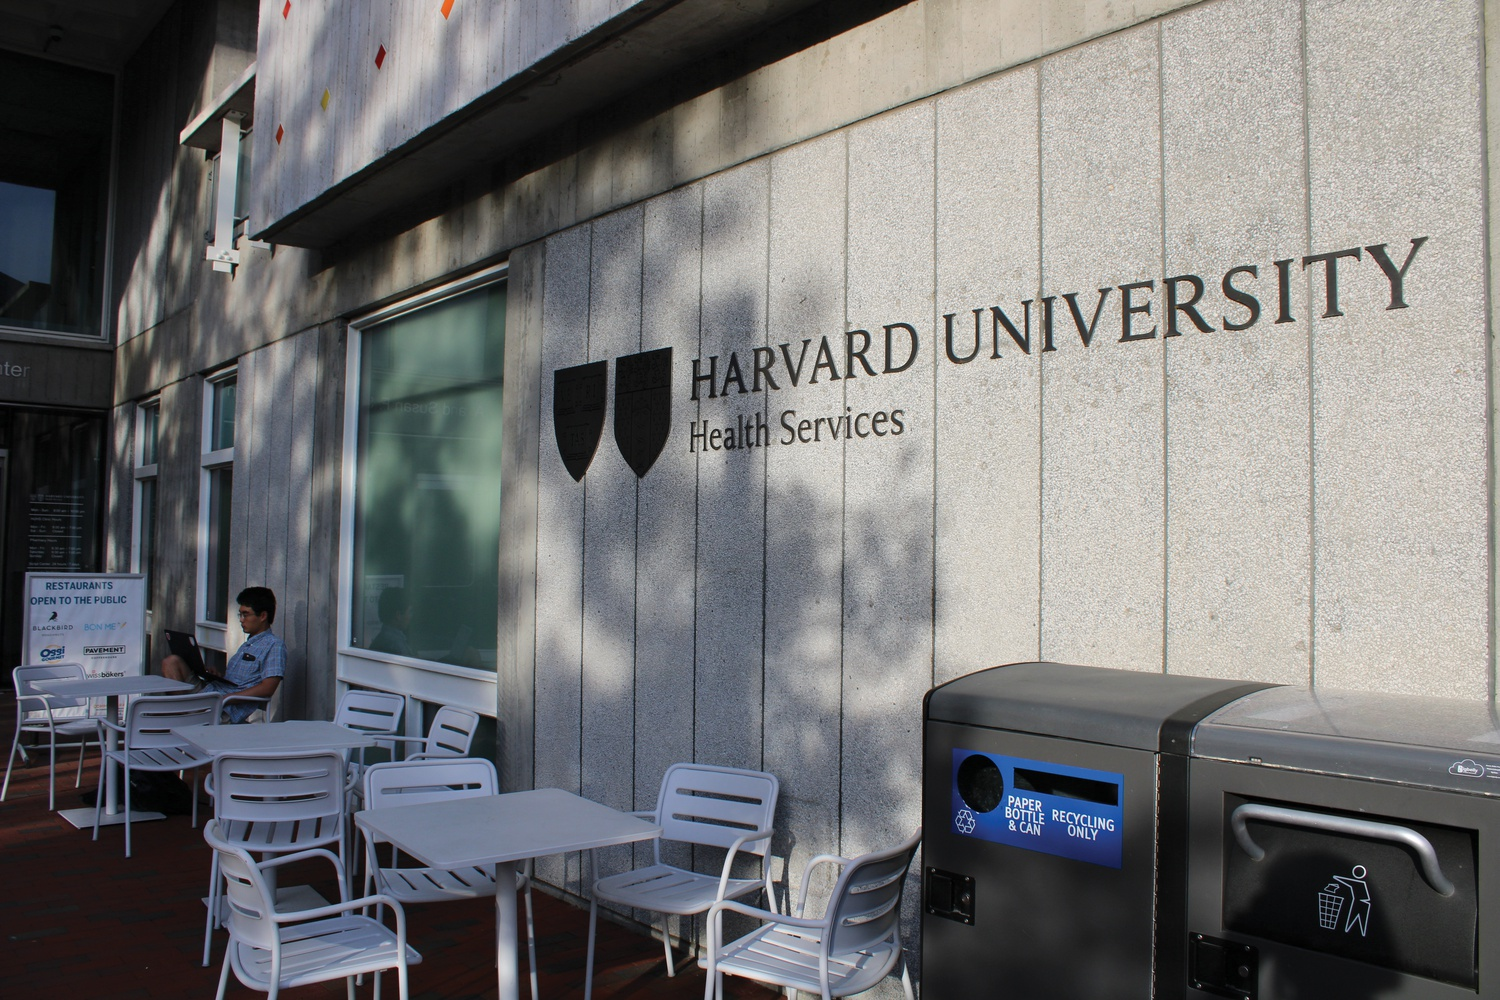 HUHS and University administrators have sent a series of emails to Harvard affiliates about the 2019 novel coronavirus.